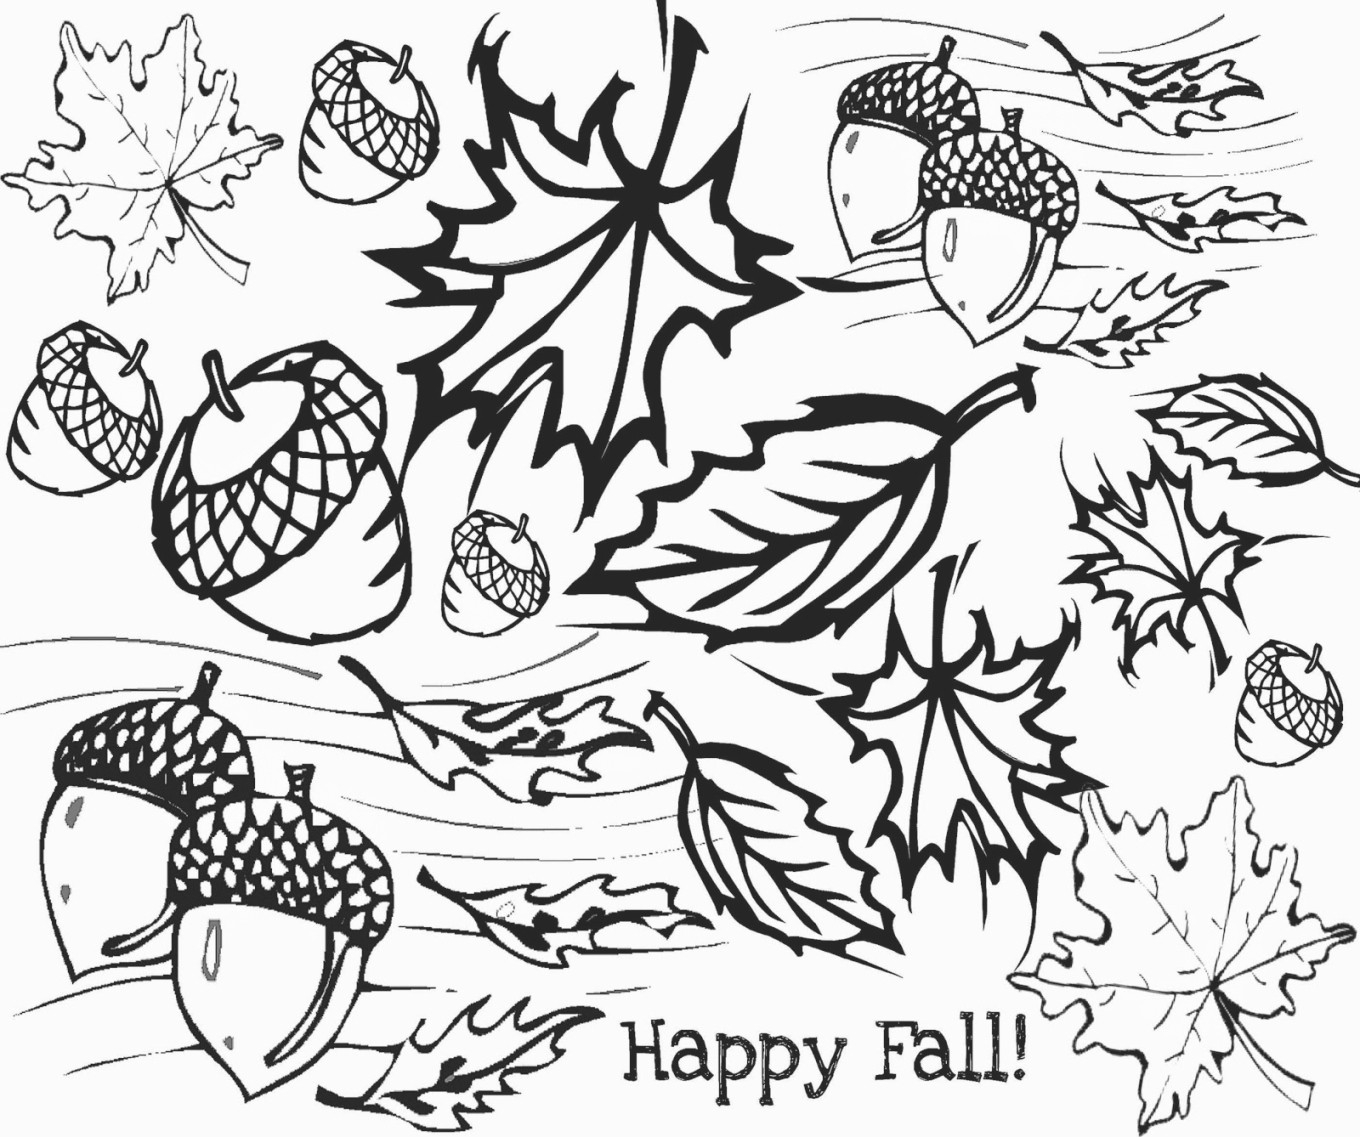 Autumn Coloring Pages Printable to Print 4o - Free For Children